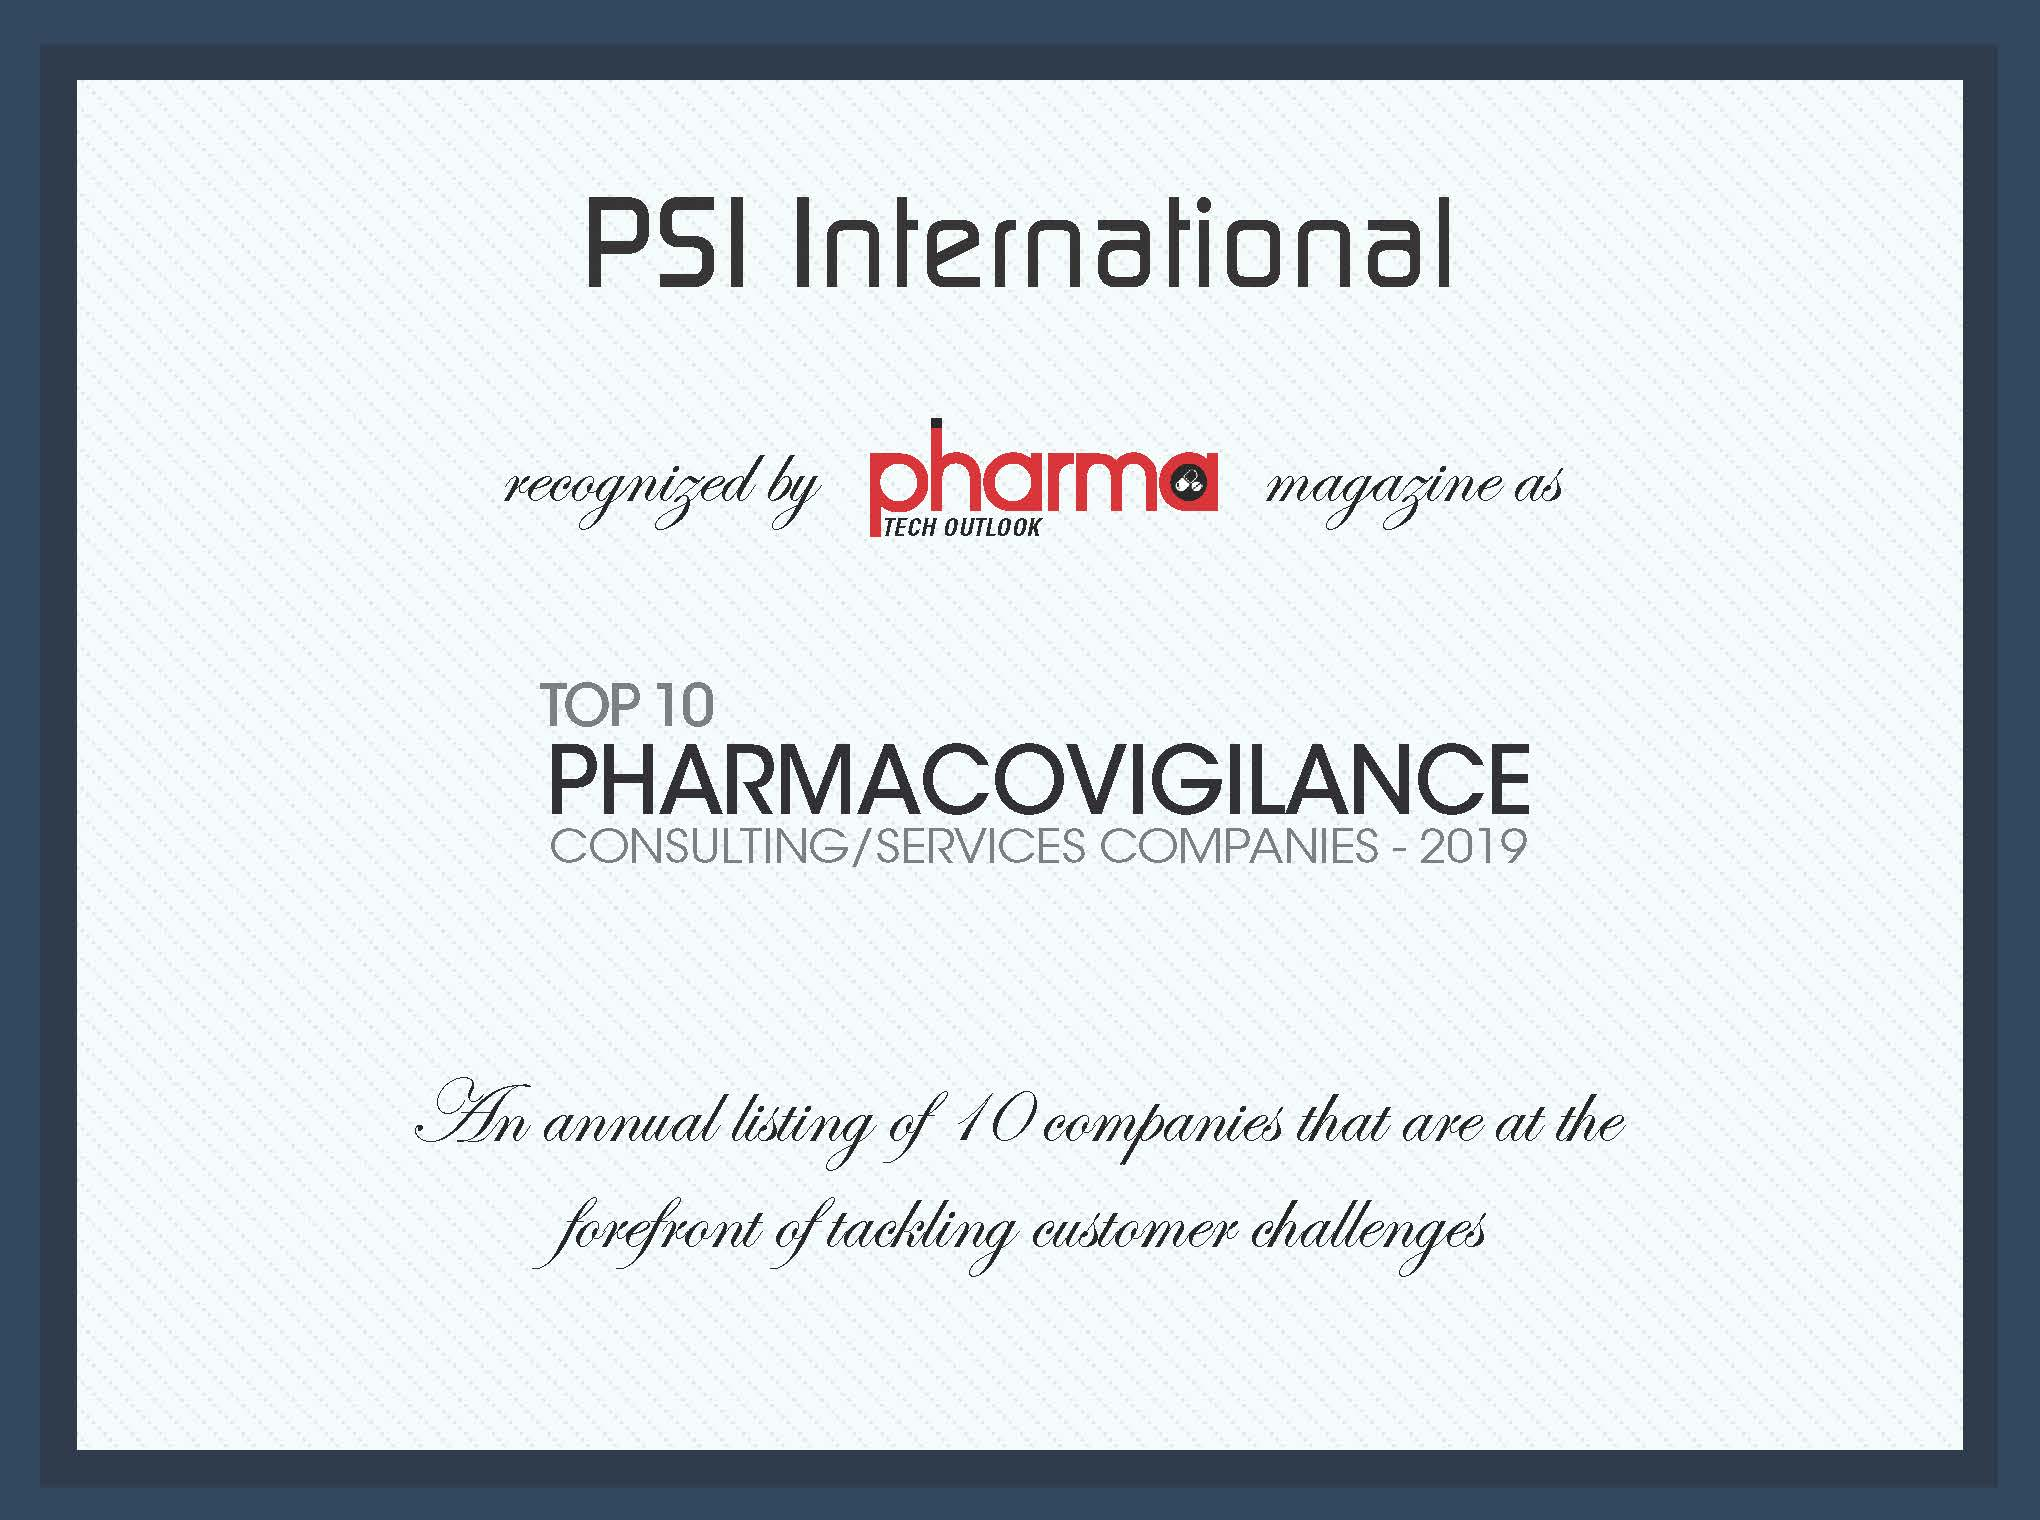 Top 10 Pharmacovigilance Consulting / Services Companies